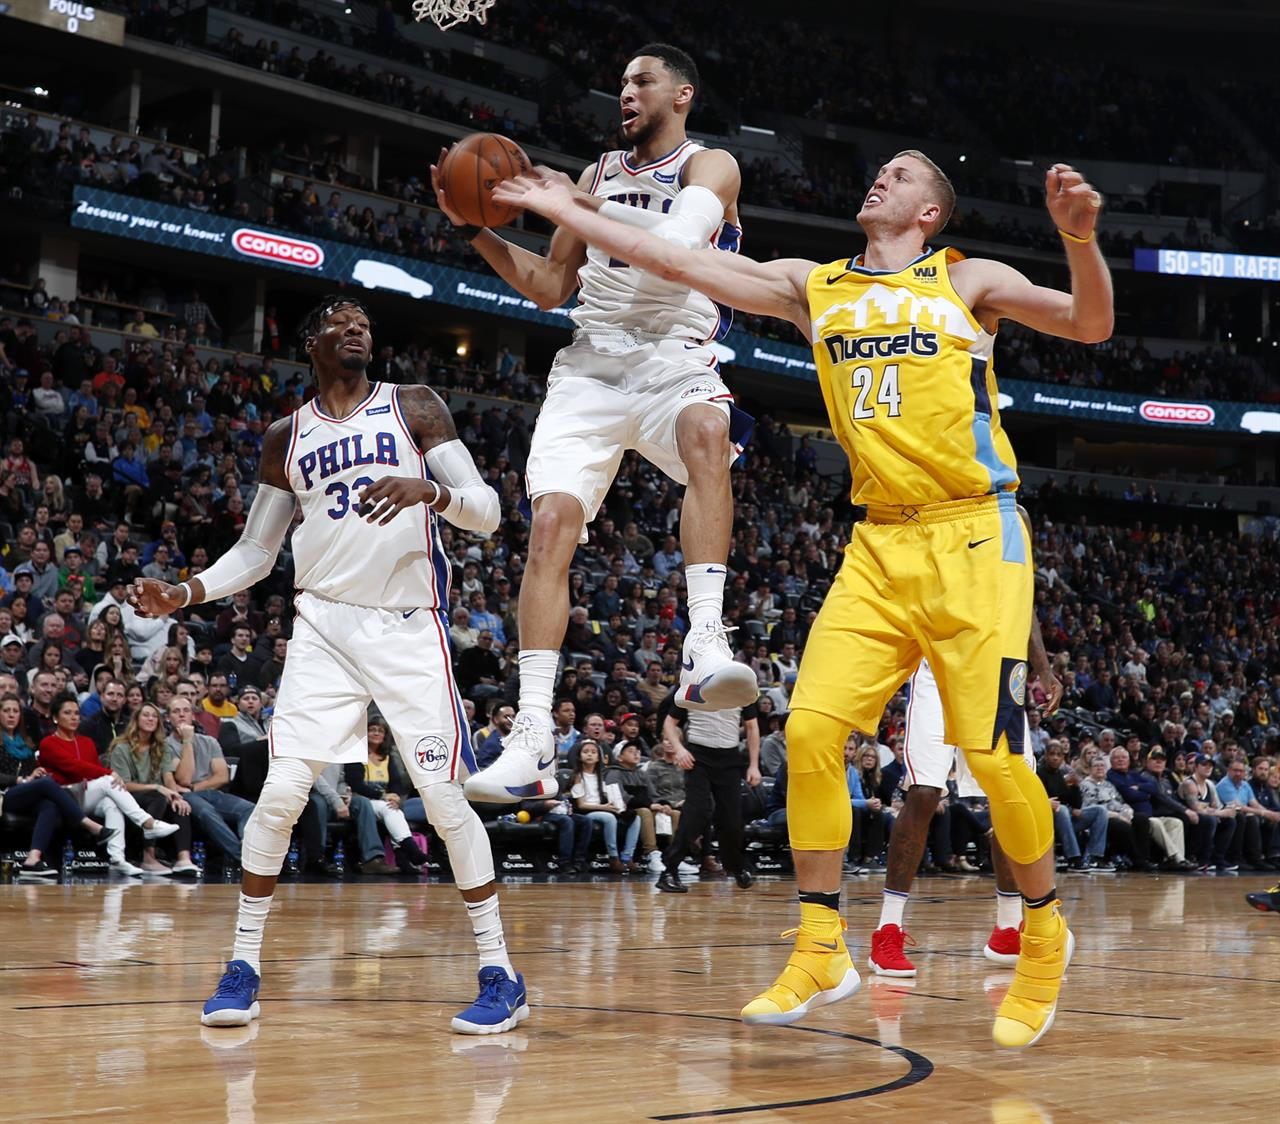 Denver News Nuggets: Bayless Lifts Embiid-less 76ers Over Nuggets 107-102